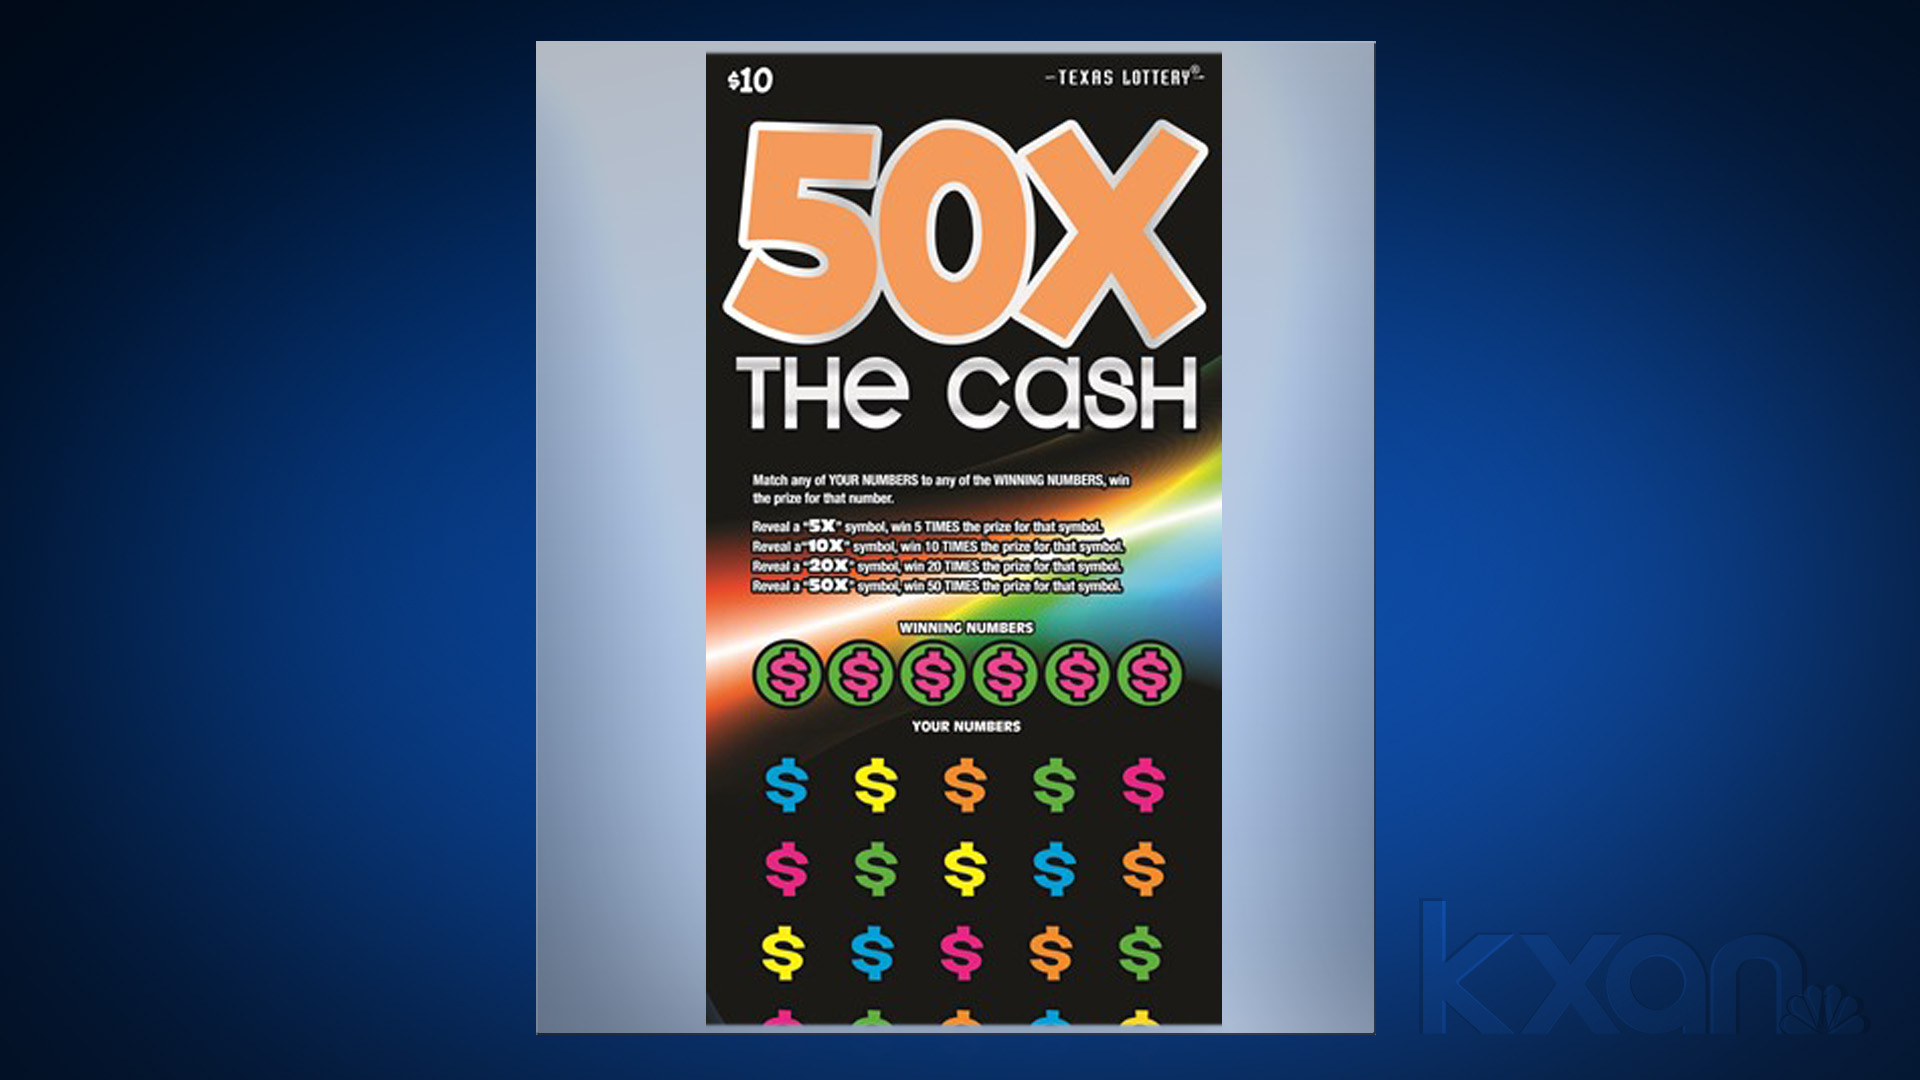 50X the cash lottery scratch